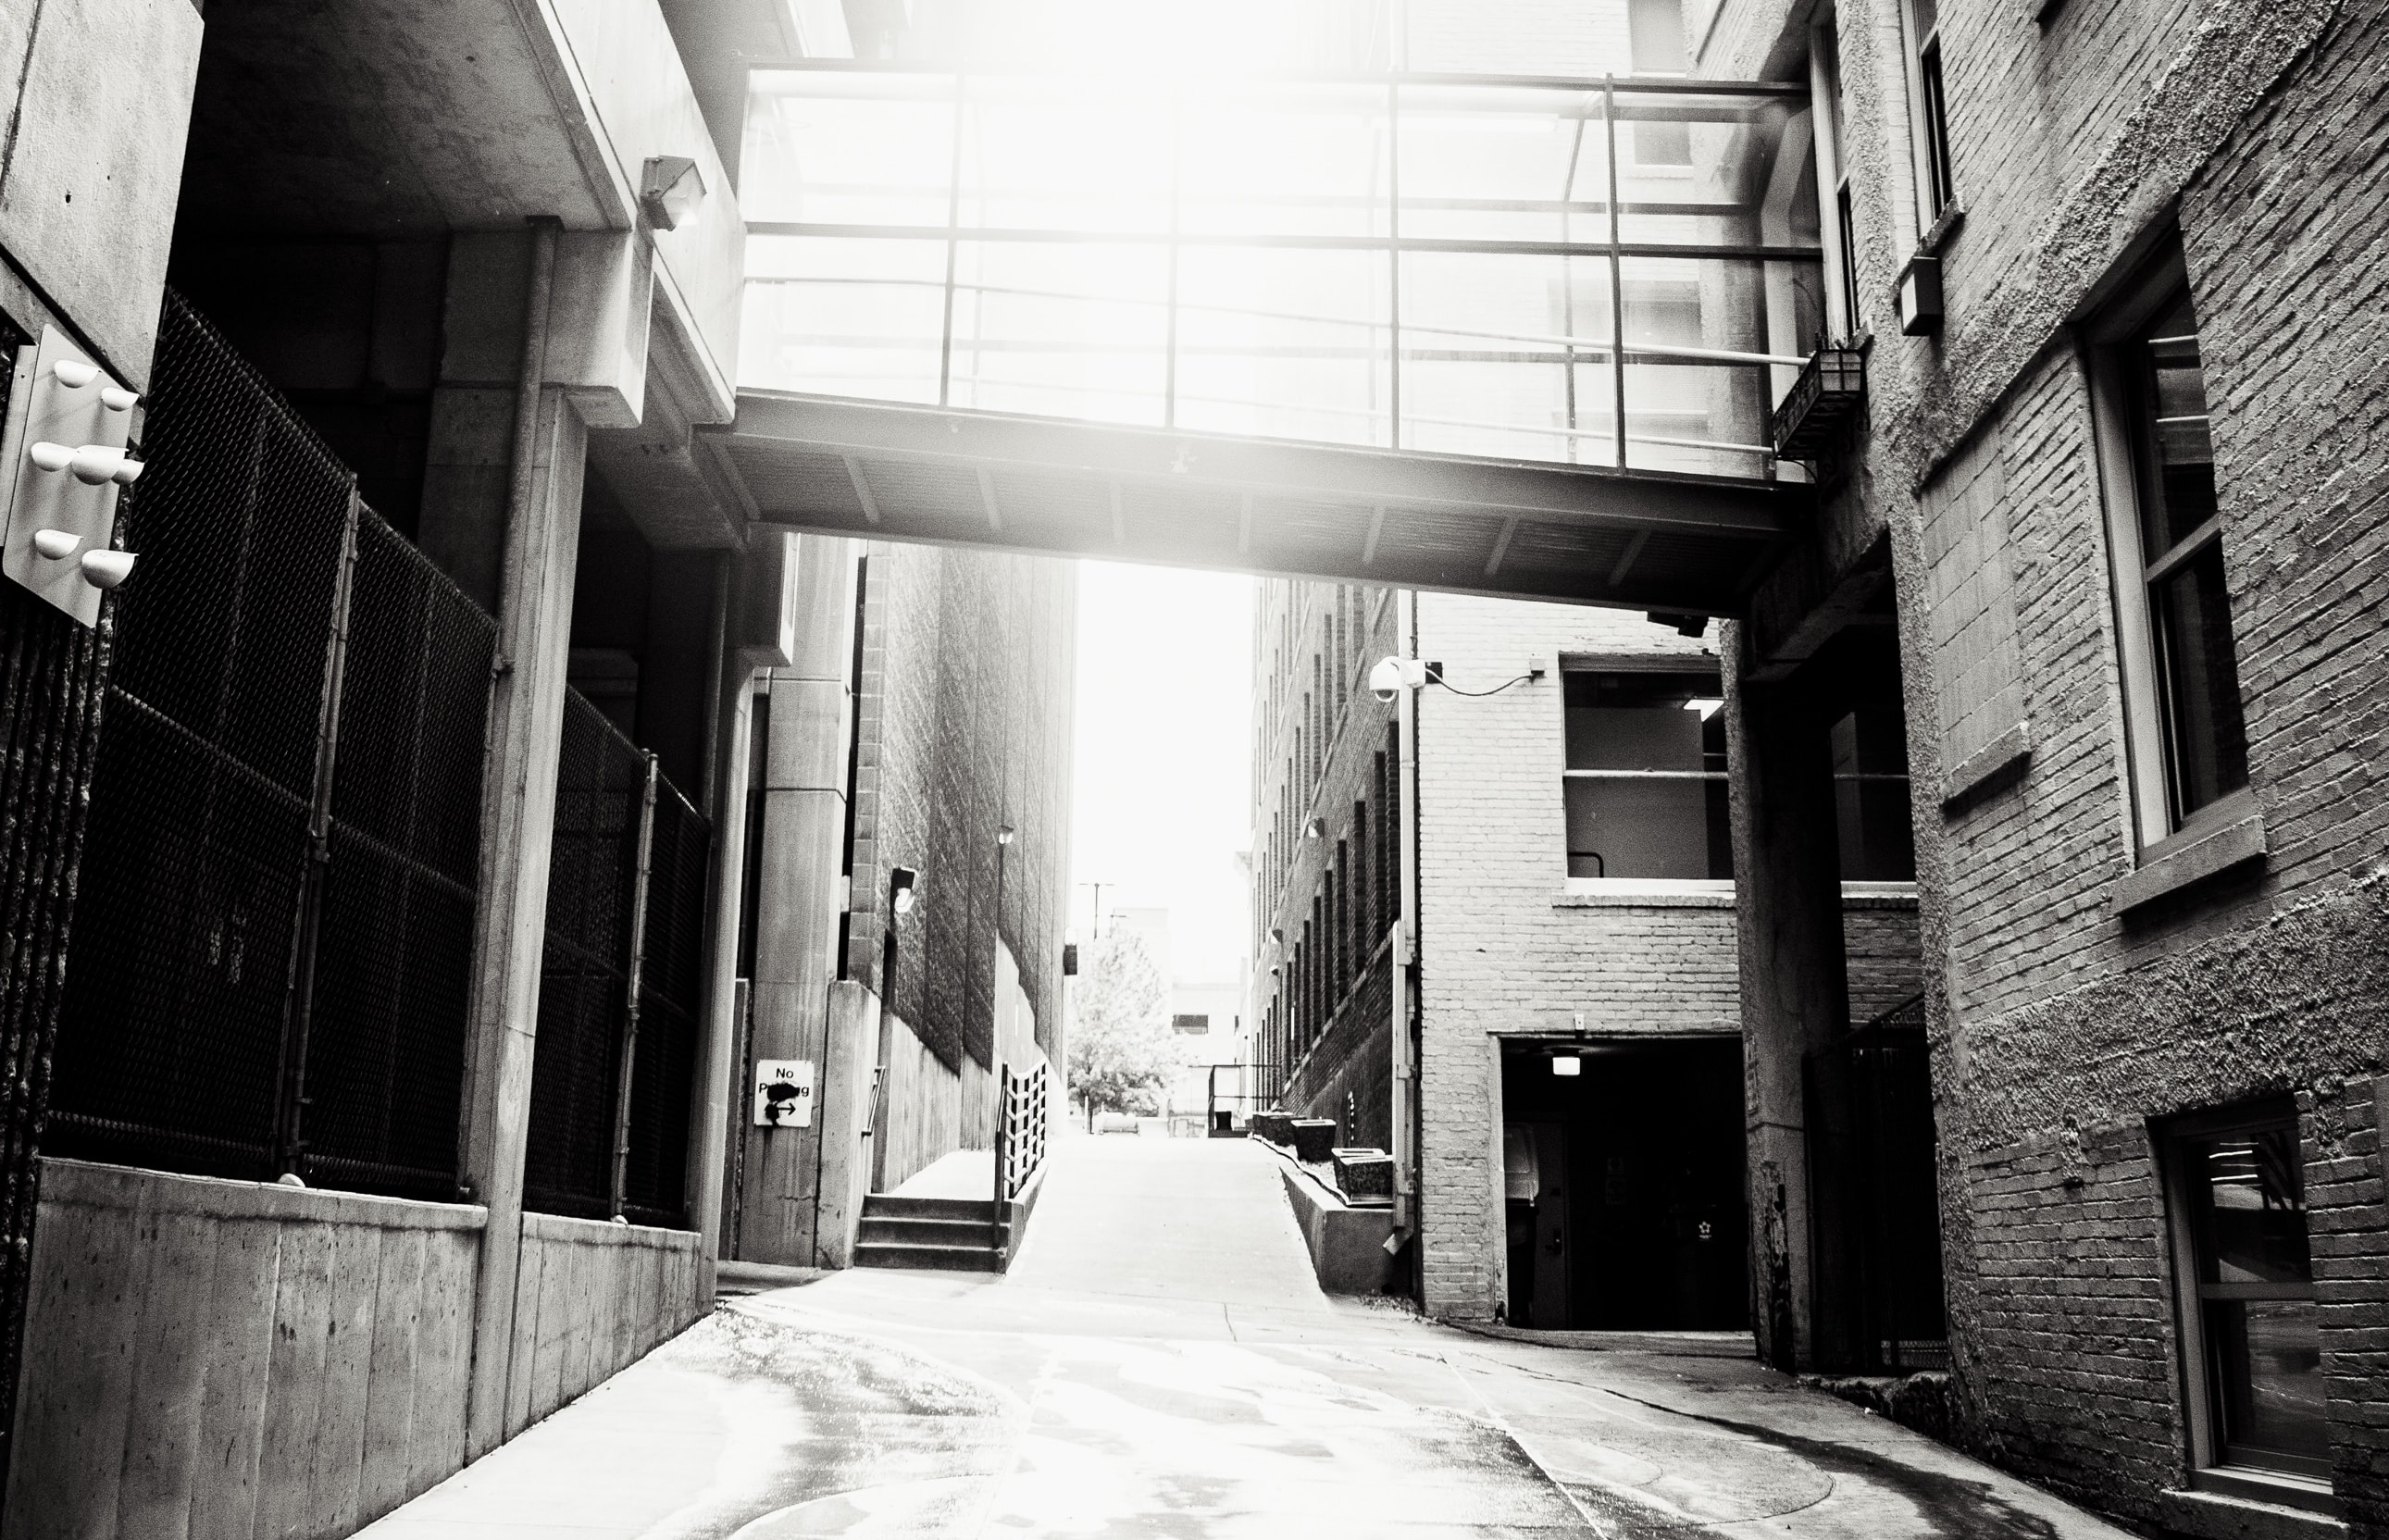 Photo of nondescript city alleyway